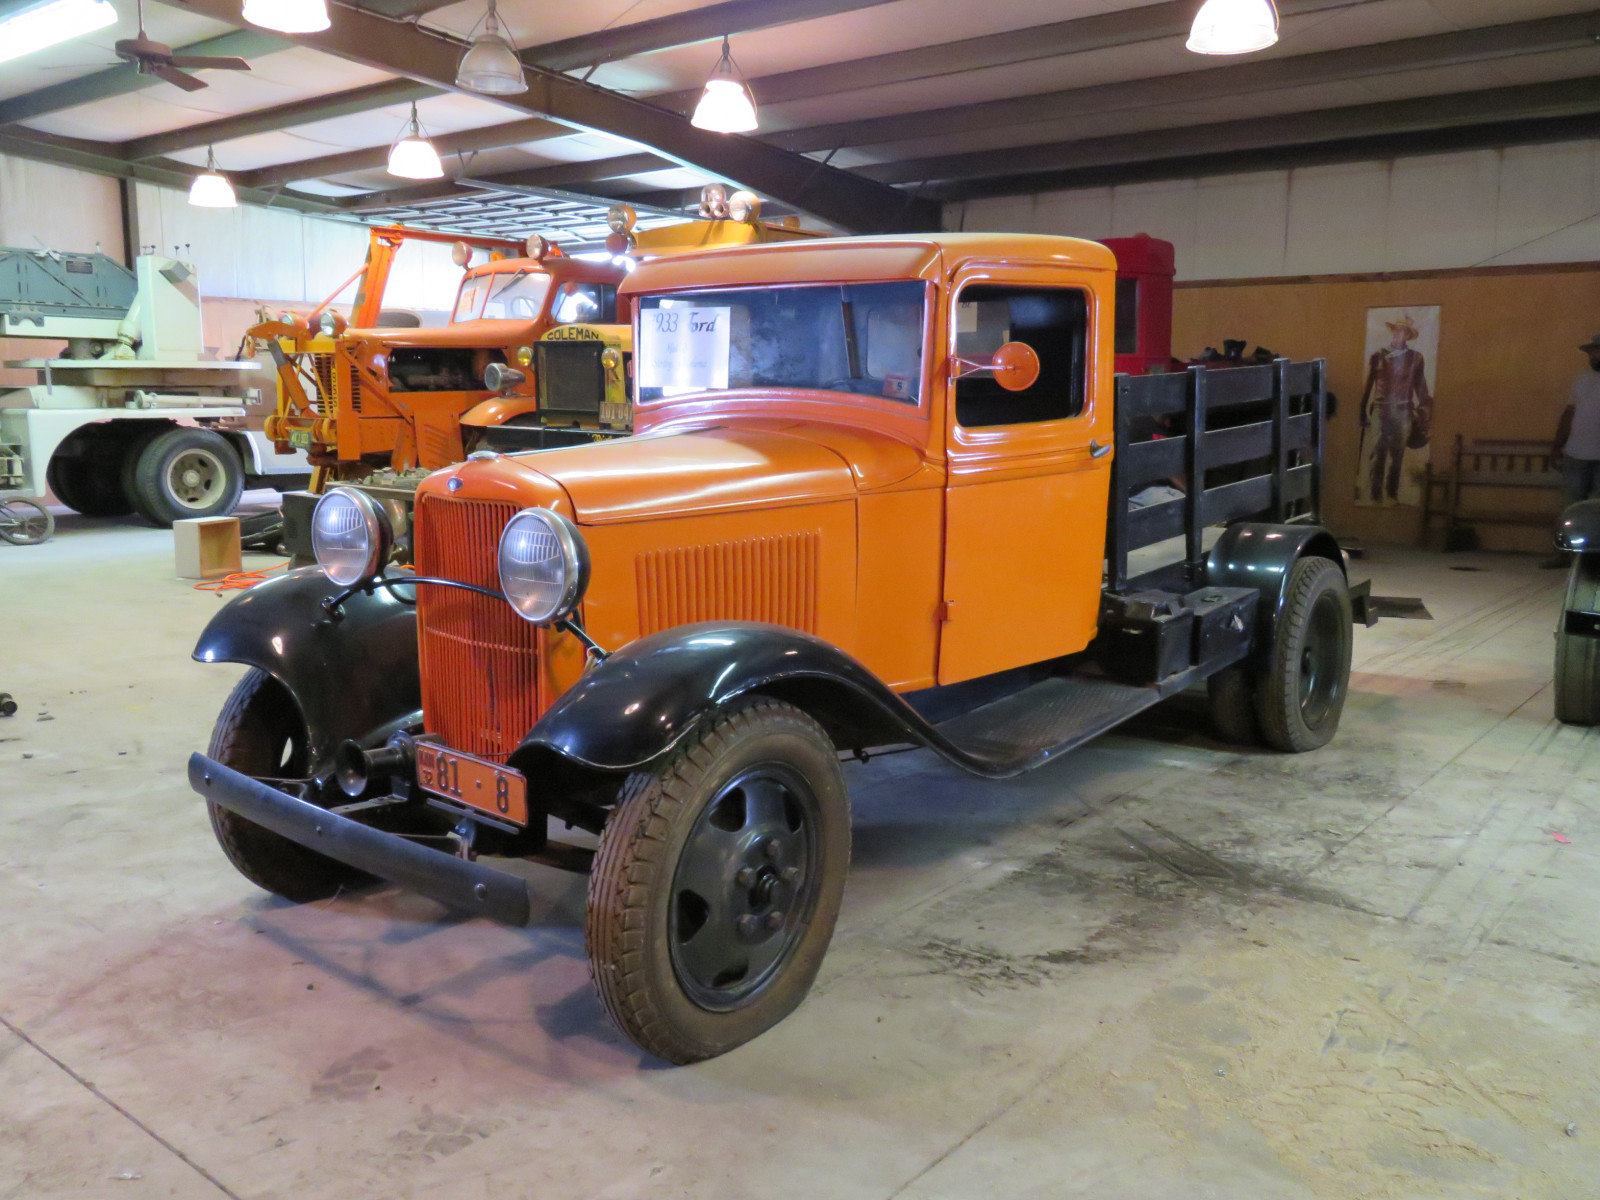 1932 1/2 Ford Model B Stake Bed Truck - Image 3